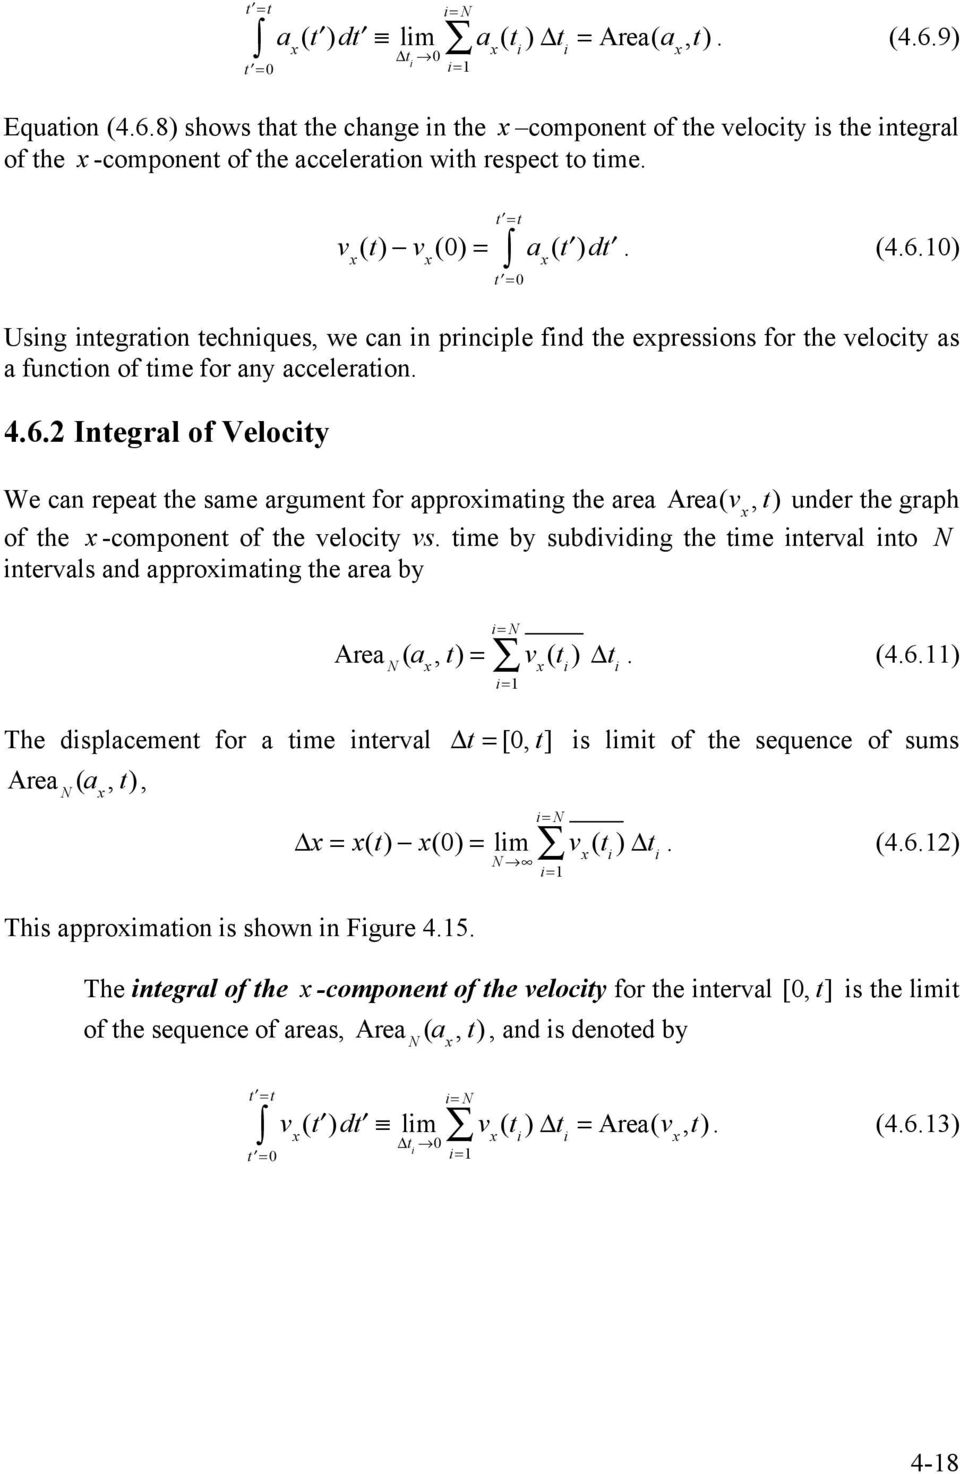 Velocity We can repeat the same argument for approimating the area Area(v, t) under the graph of the -component of the velocity vs time by subdividing the time interval into N intervals and